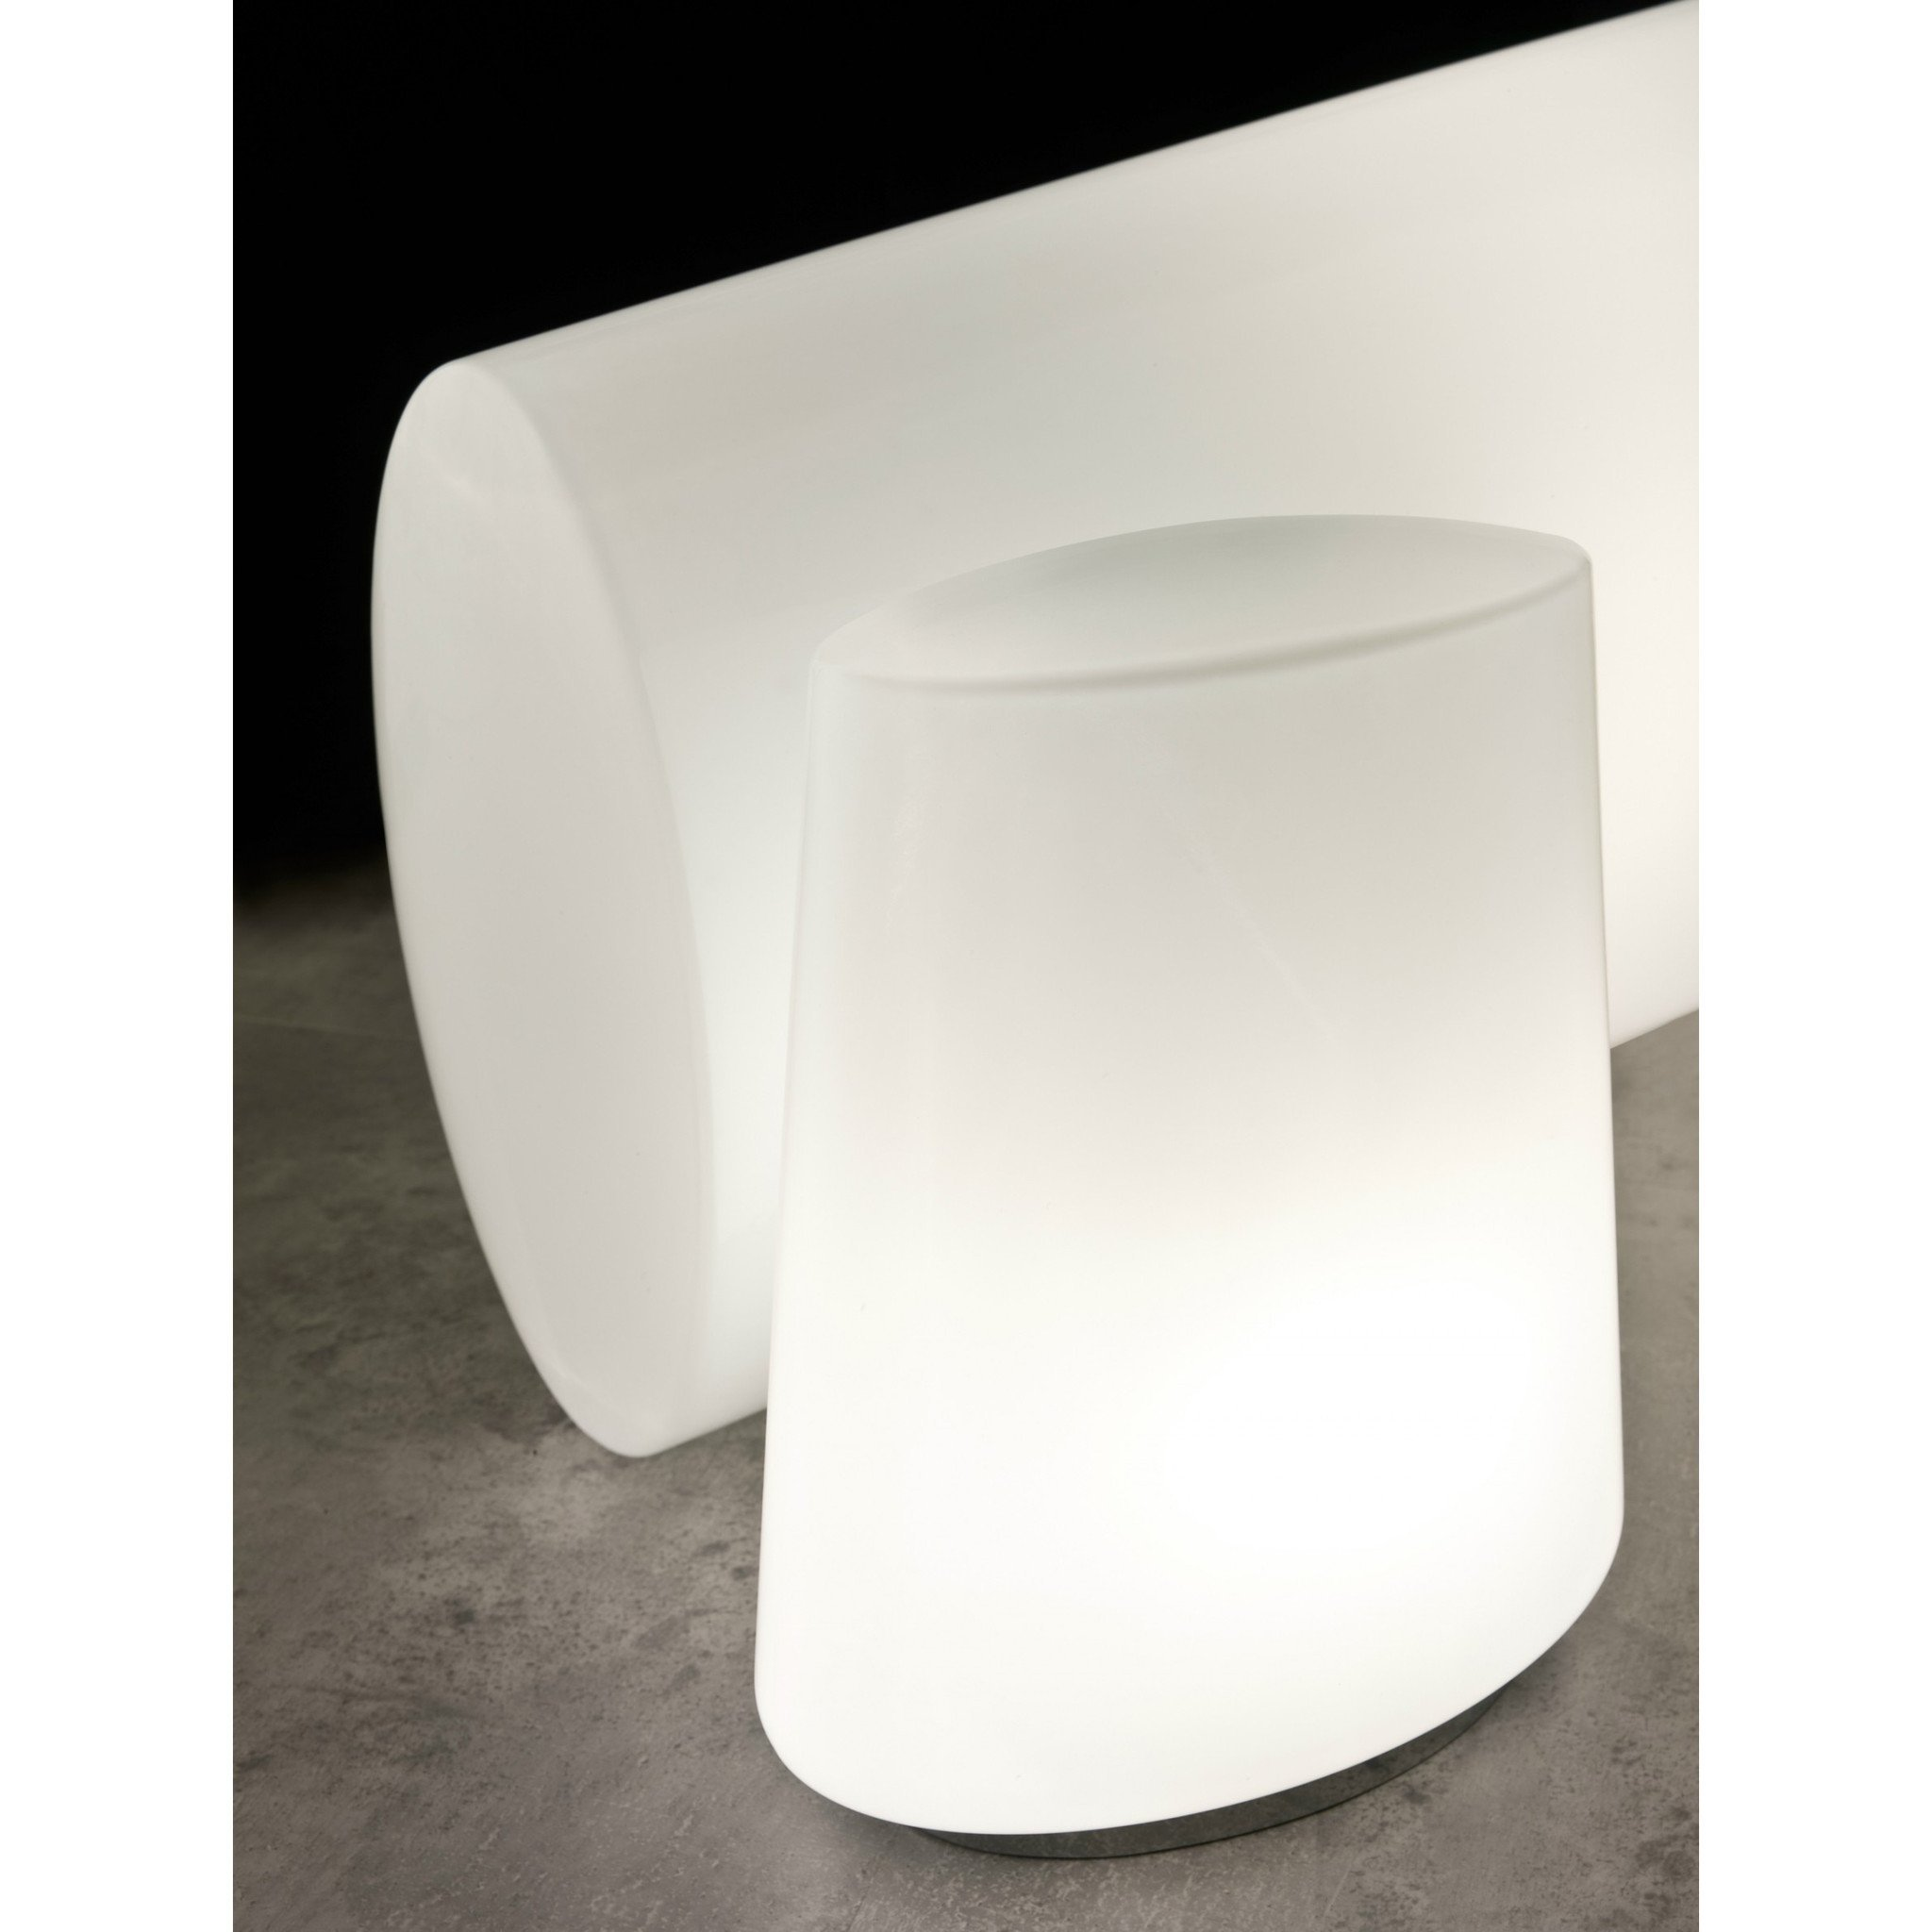 pent02000000009_pent02000000010_penta_polar_big_table_lamp_1_4959d2e58f076f30a574b2b429fd1e1c